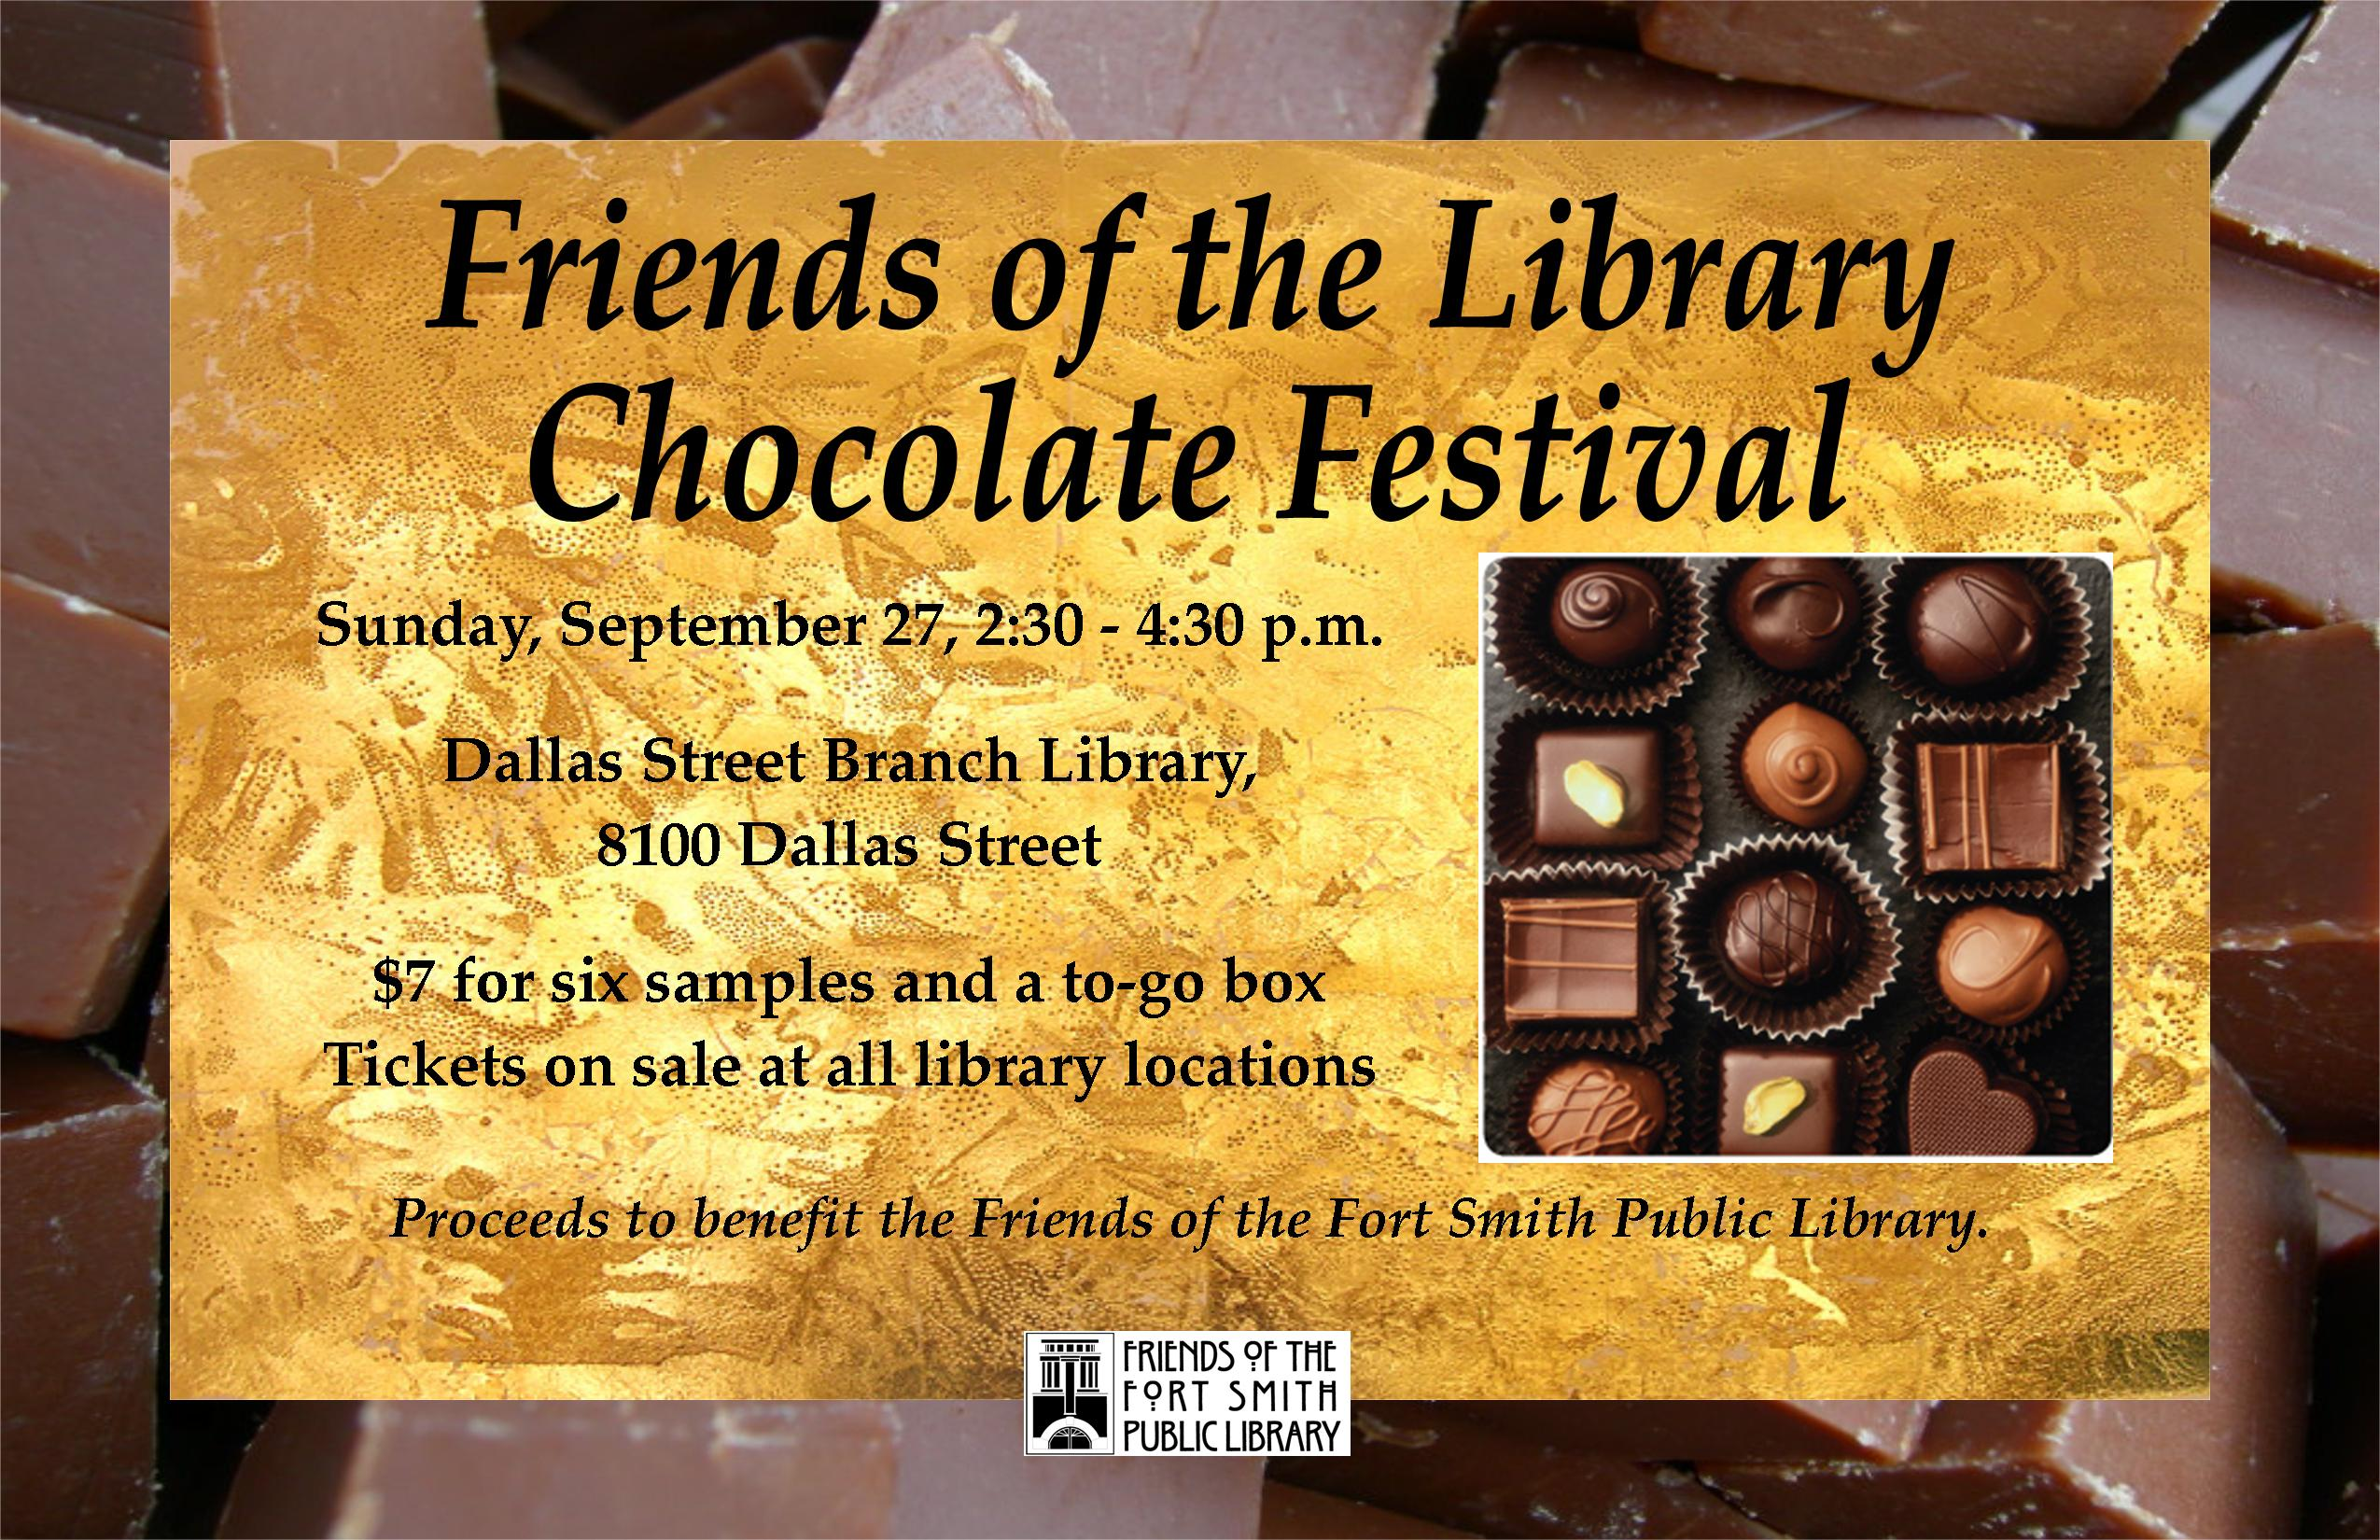 Chocolate Festival Poster 2020